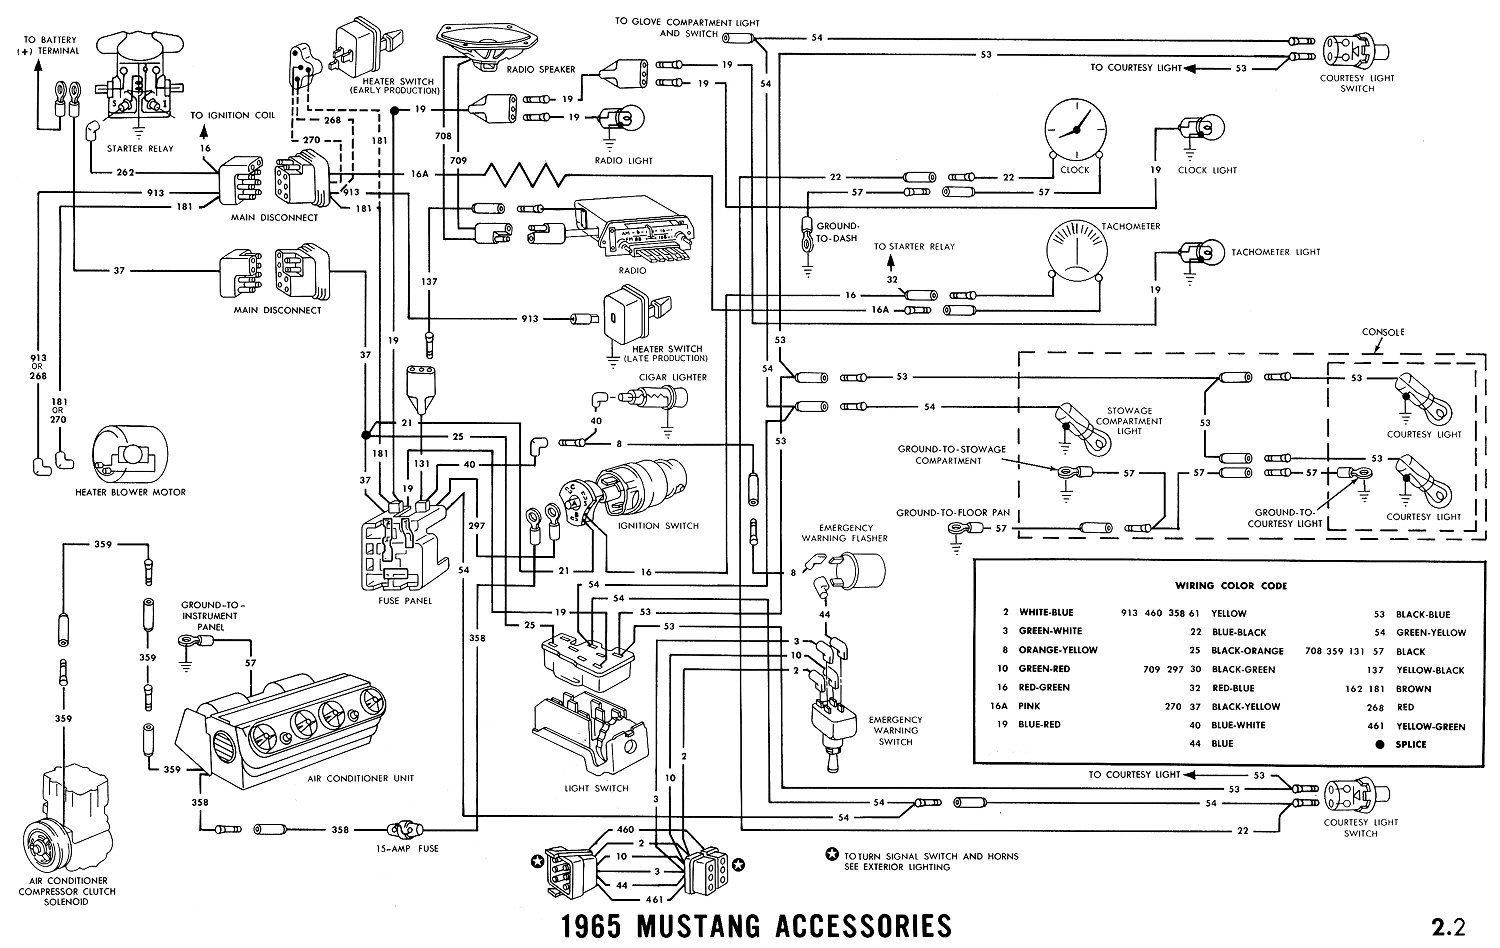 hight resolution of 1965 mustang accessories pictorial or schematic air conditioner